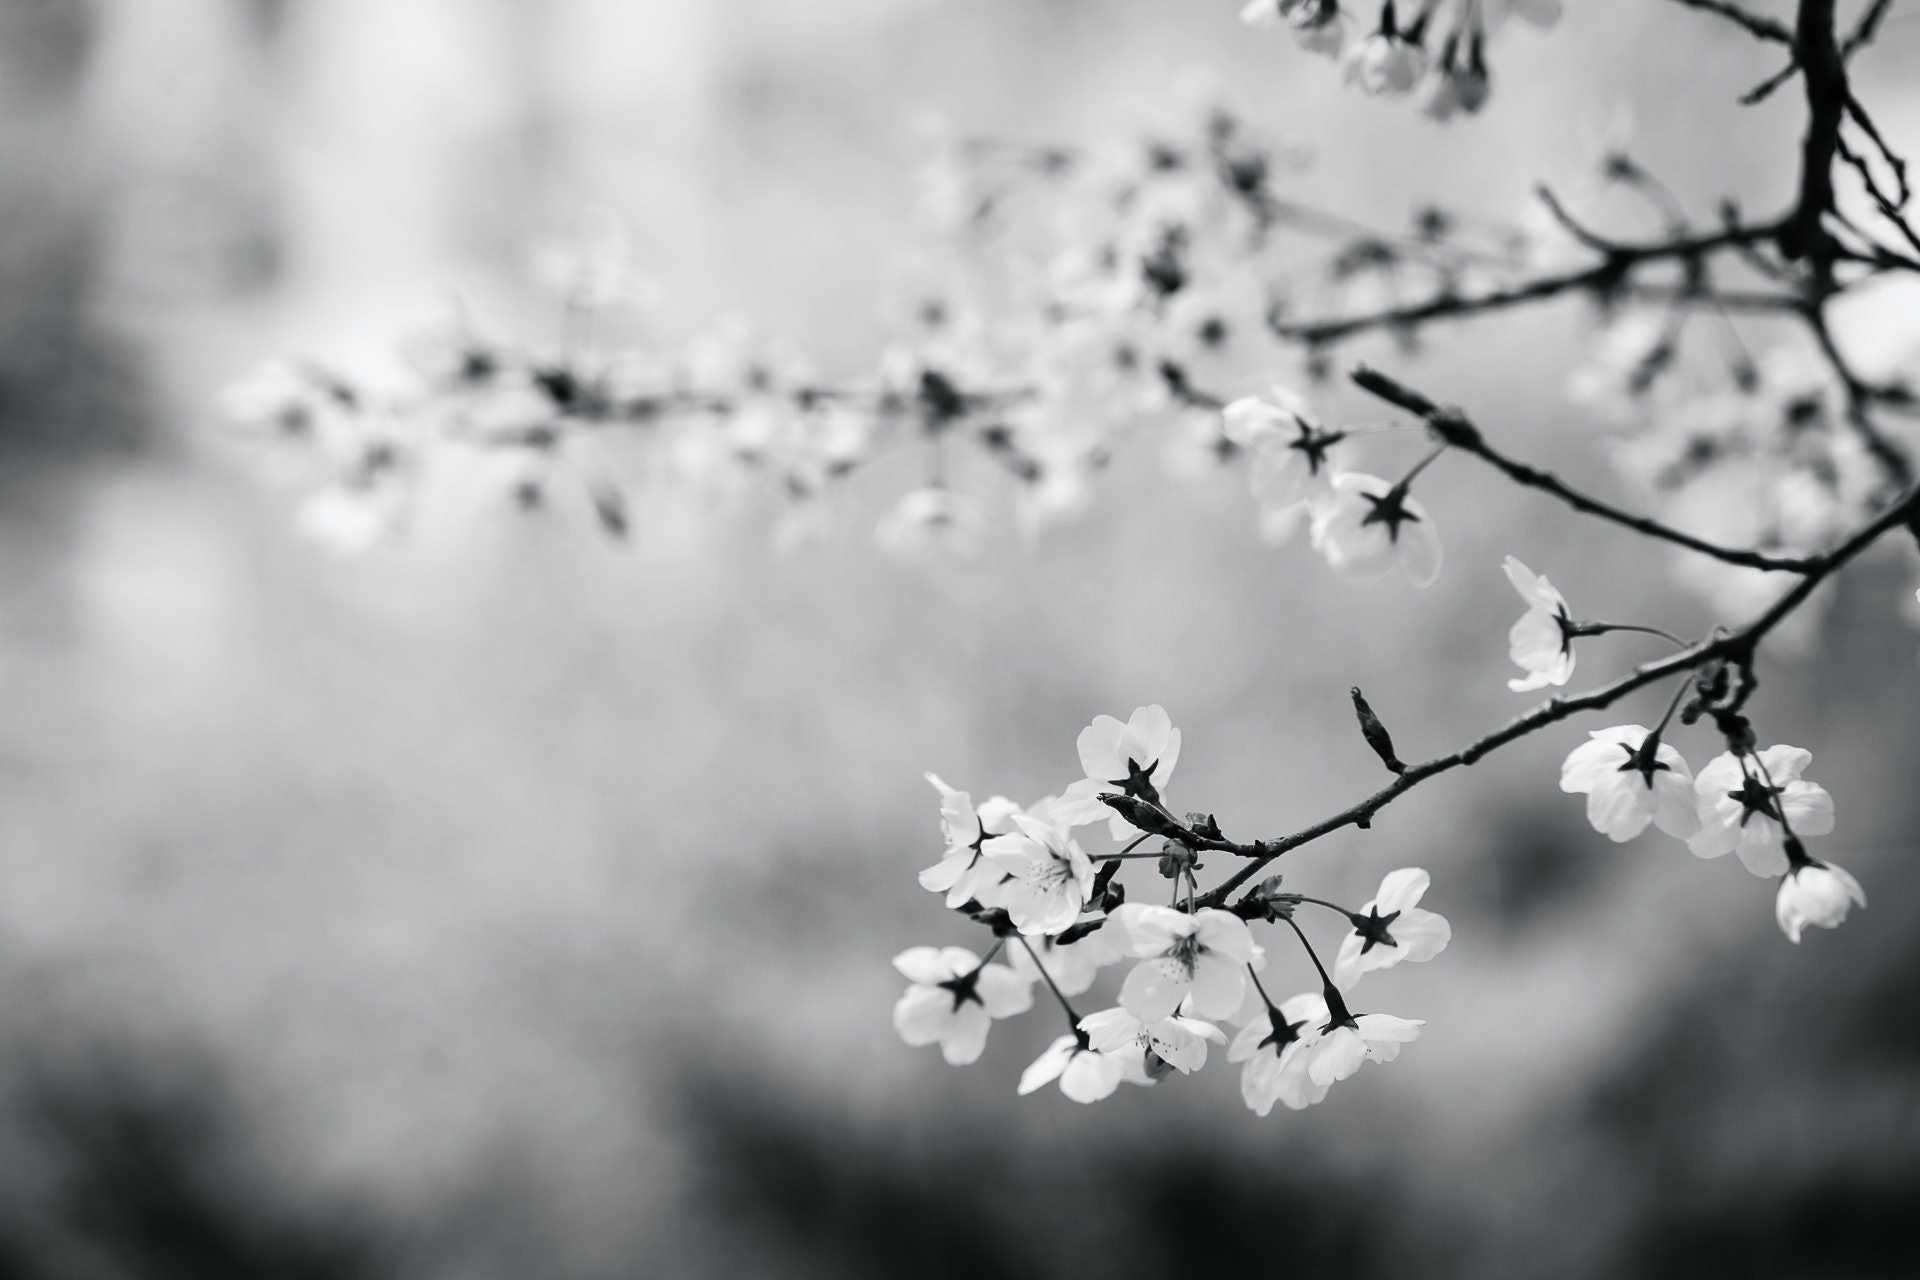 Free stock photo of black and white branch cherry blossom free download mightylinksfo